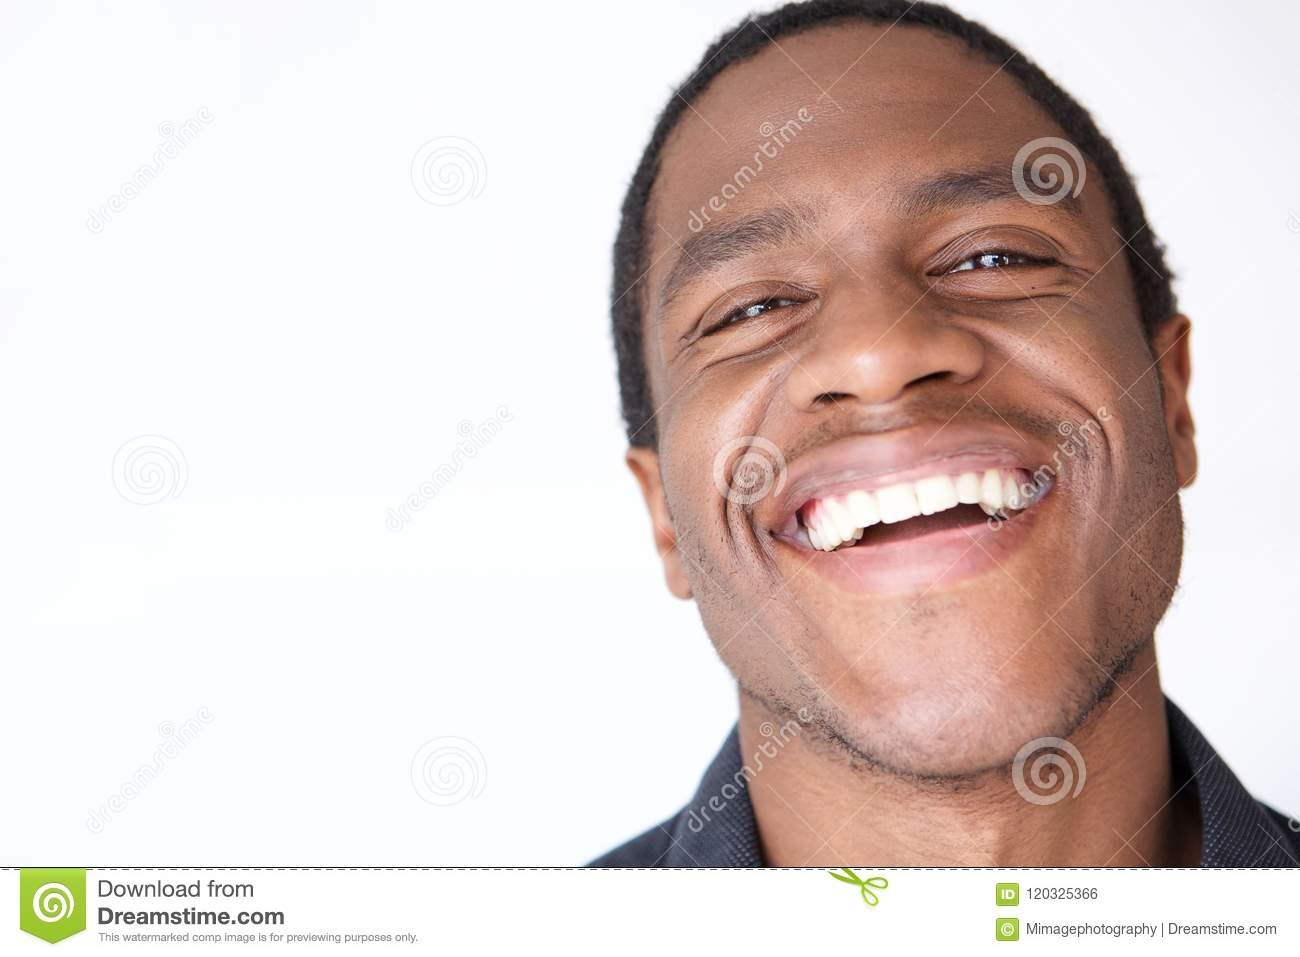 836841be31d Close up portrait of young african american man laughing against white  background